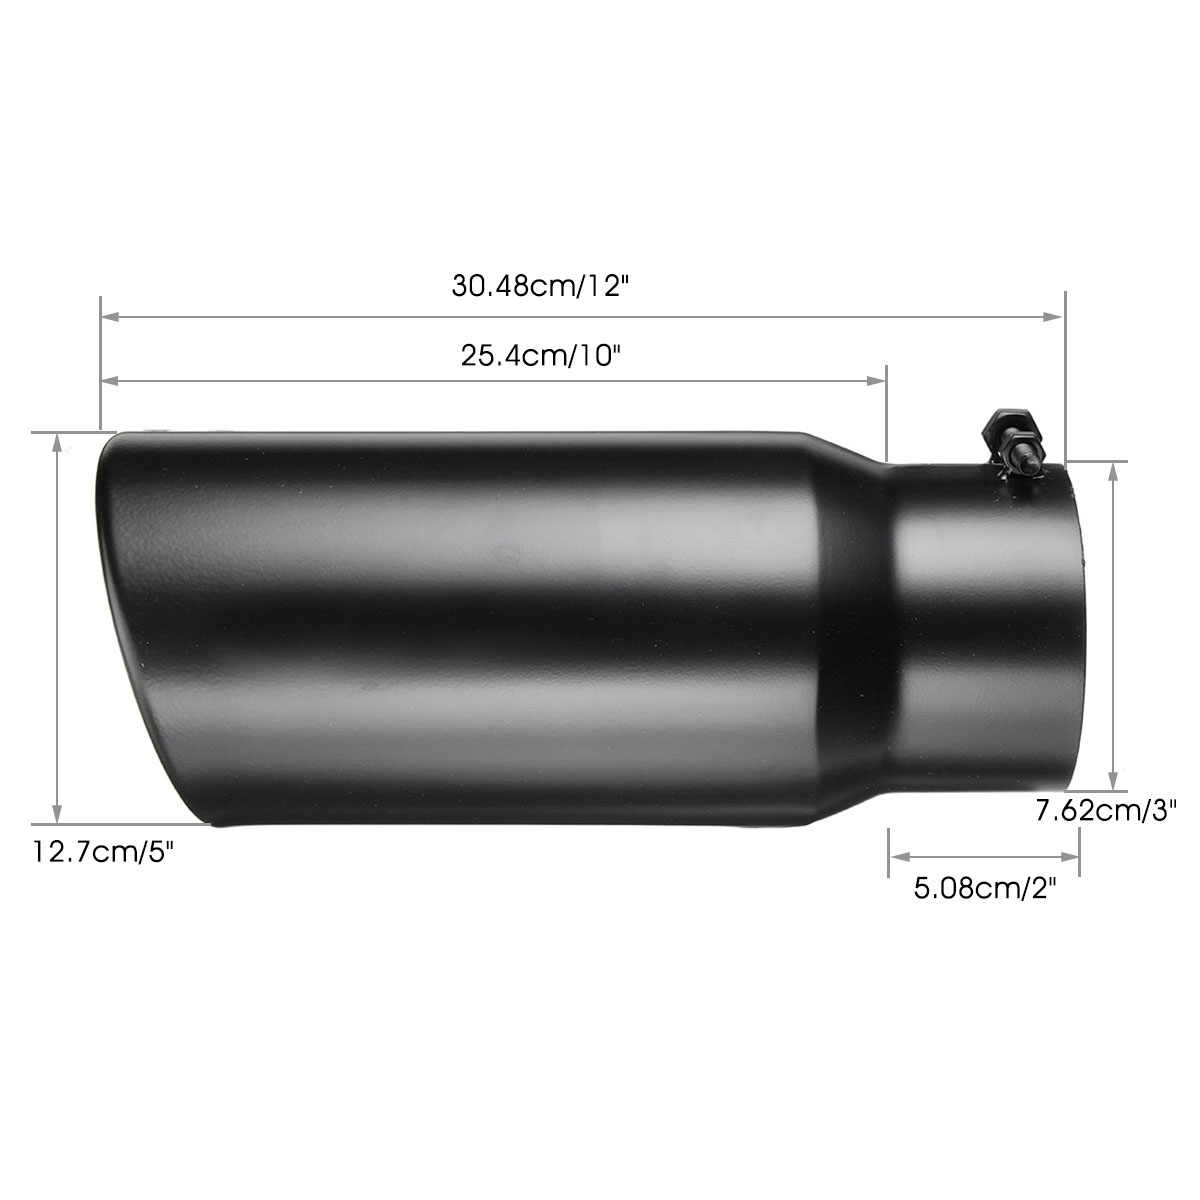 ESPEEDER Exhaust Tip Universal 3Inlet 4Outlet 12 Length Bolt On Stainless Steel Black Diesel Exhaust Tail Pipe Muffler Tip